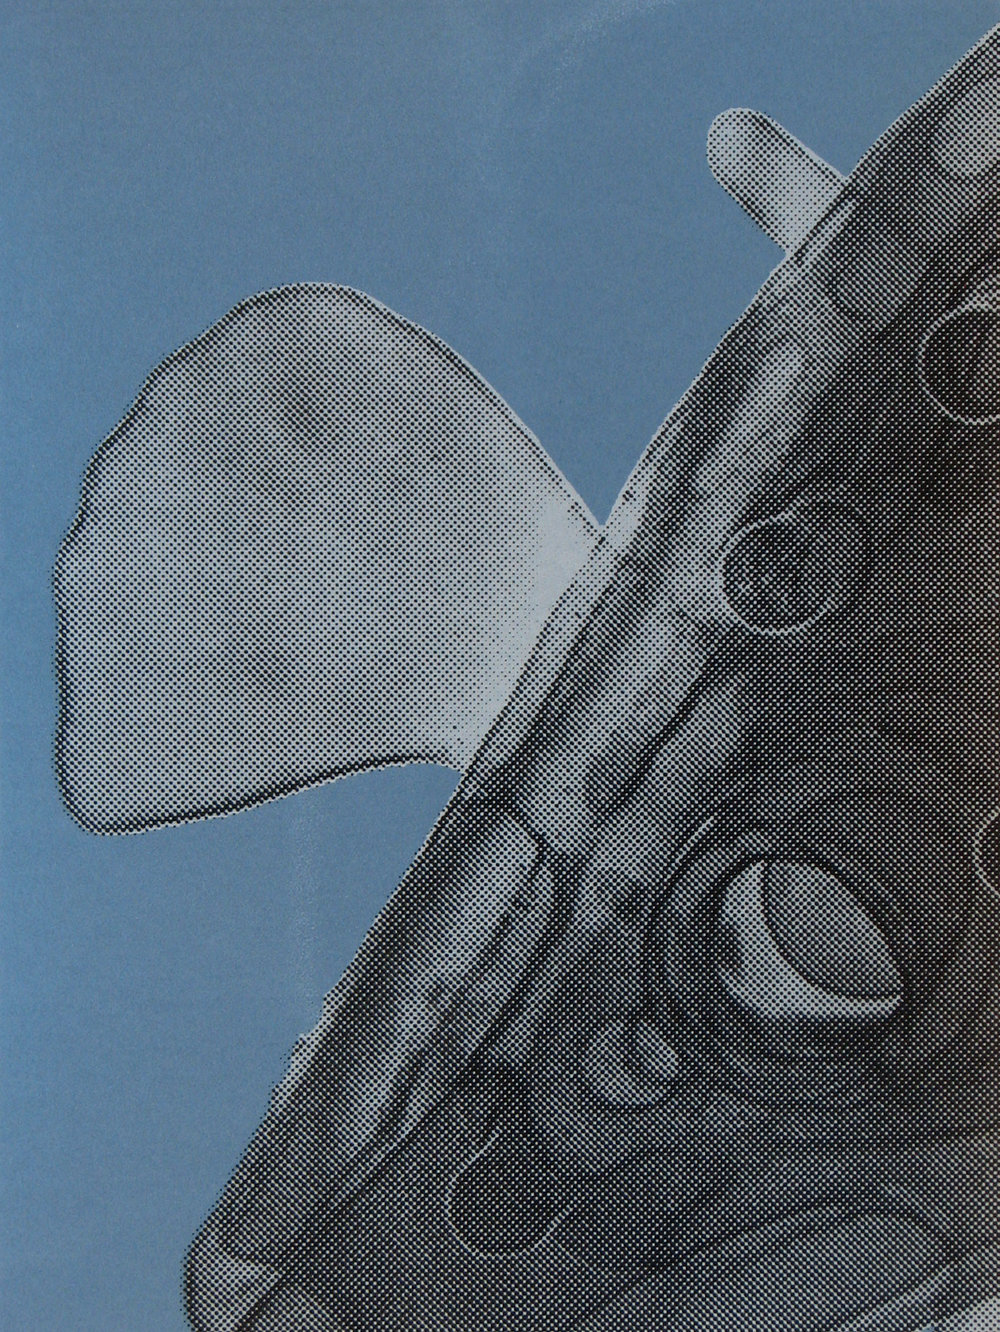 Copy of Erica Seccombe, Propeller, 2007,